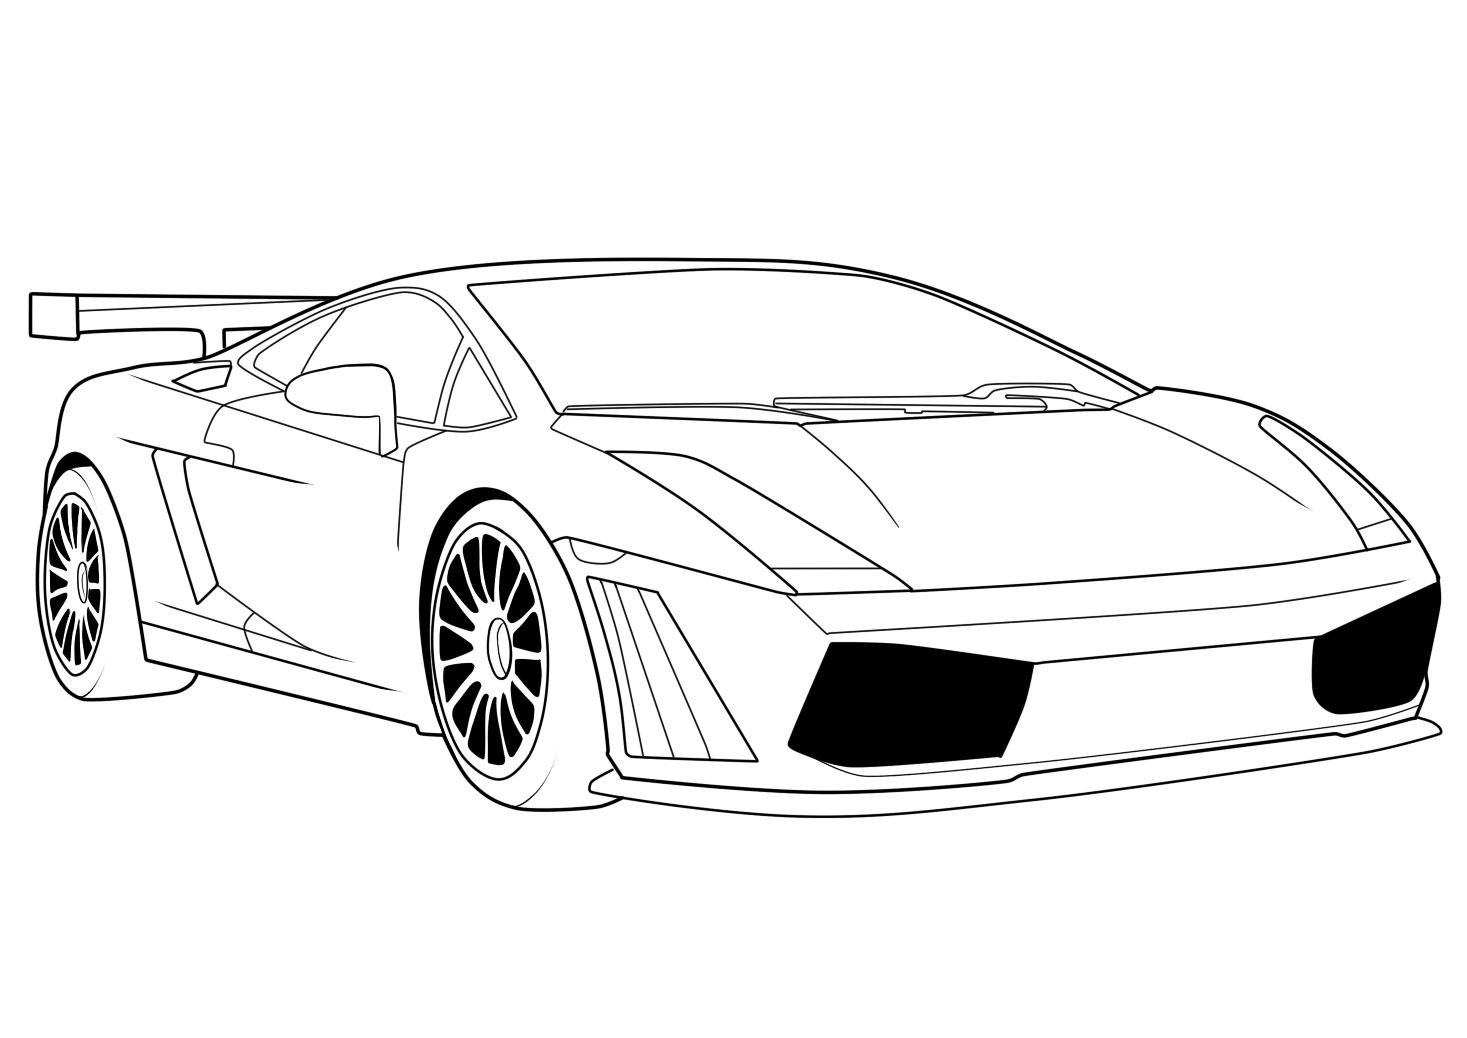 colouring pics of cars car coloring pages best coloring pages for kids colouring of cars pics